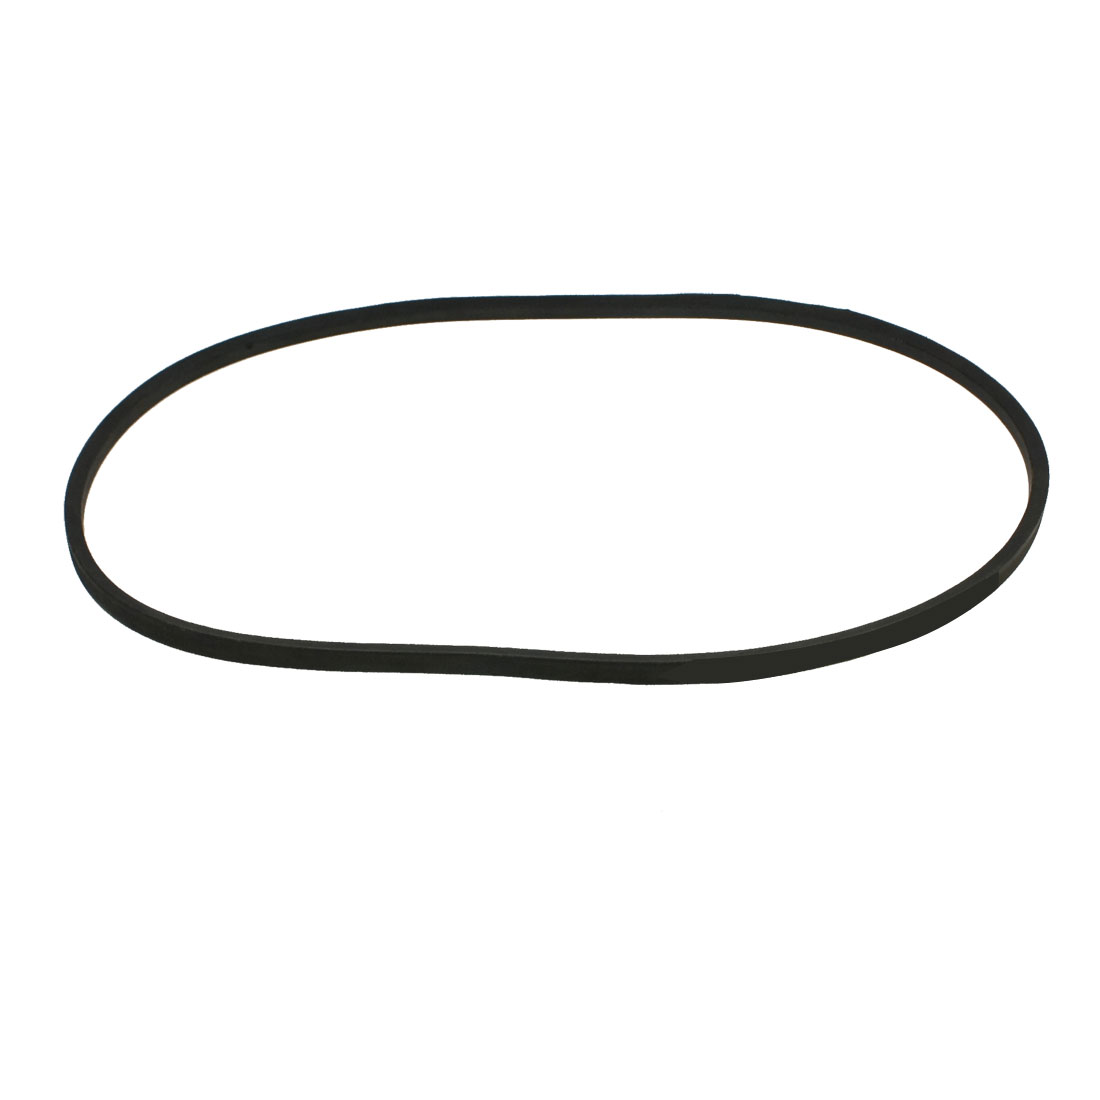 "Industry Lawn Mower Band Black Rubber O Type Vee V Belt 3/8"" x 33 1/2"""